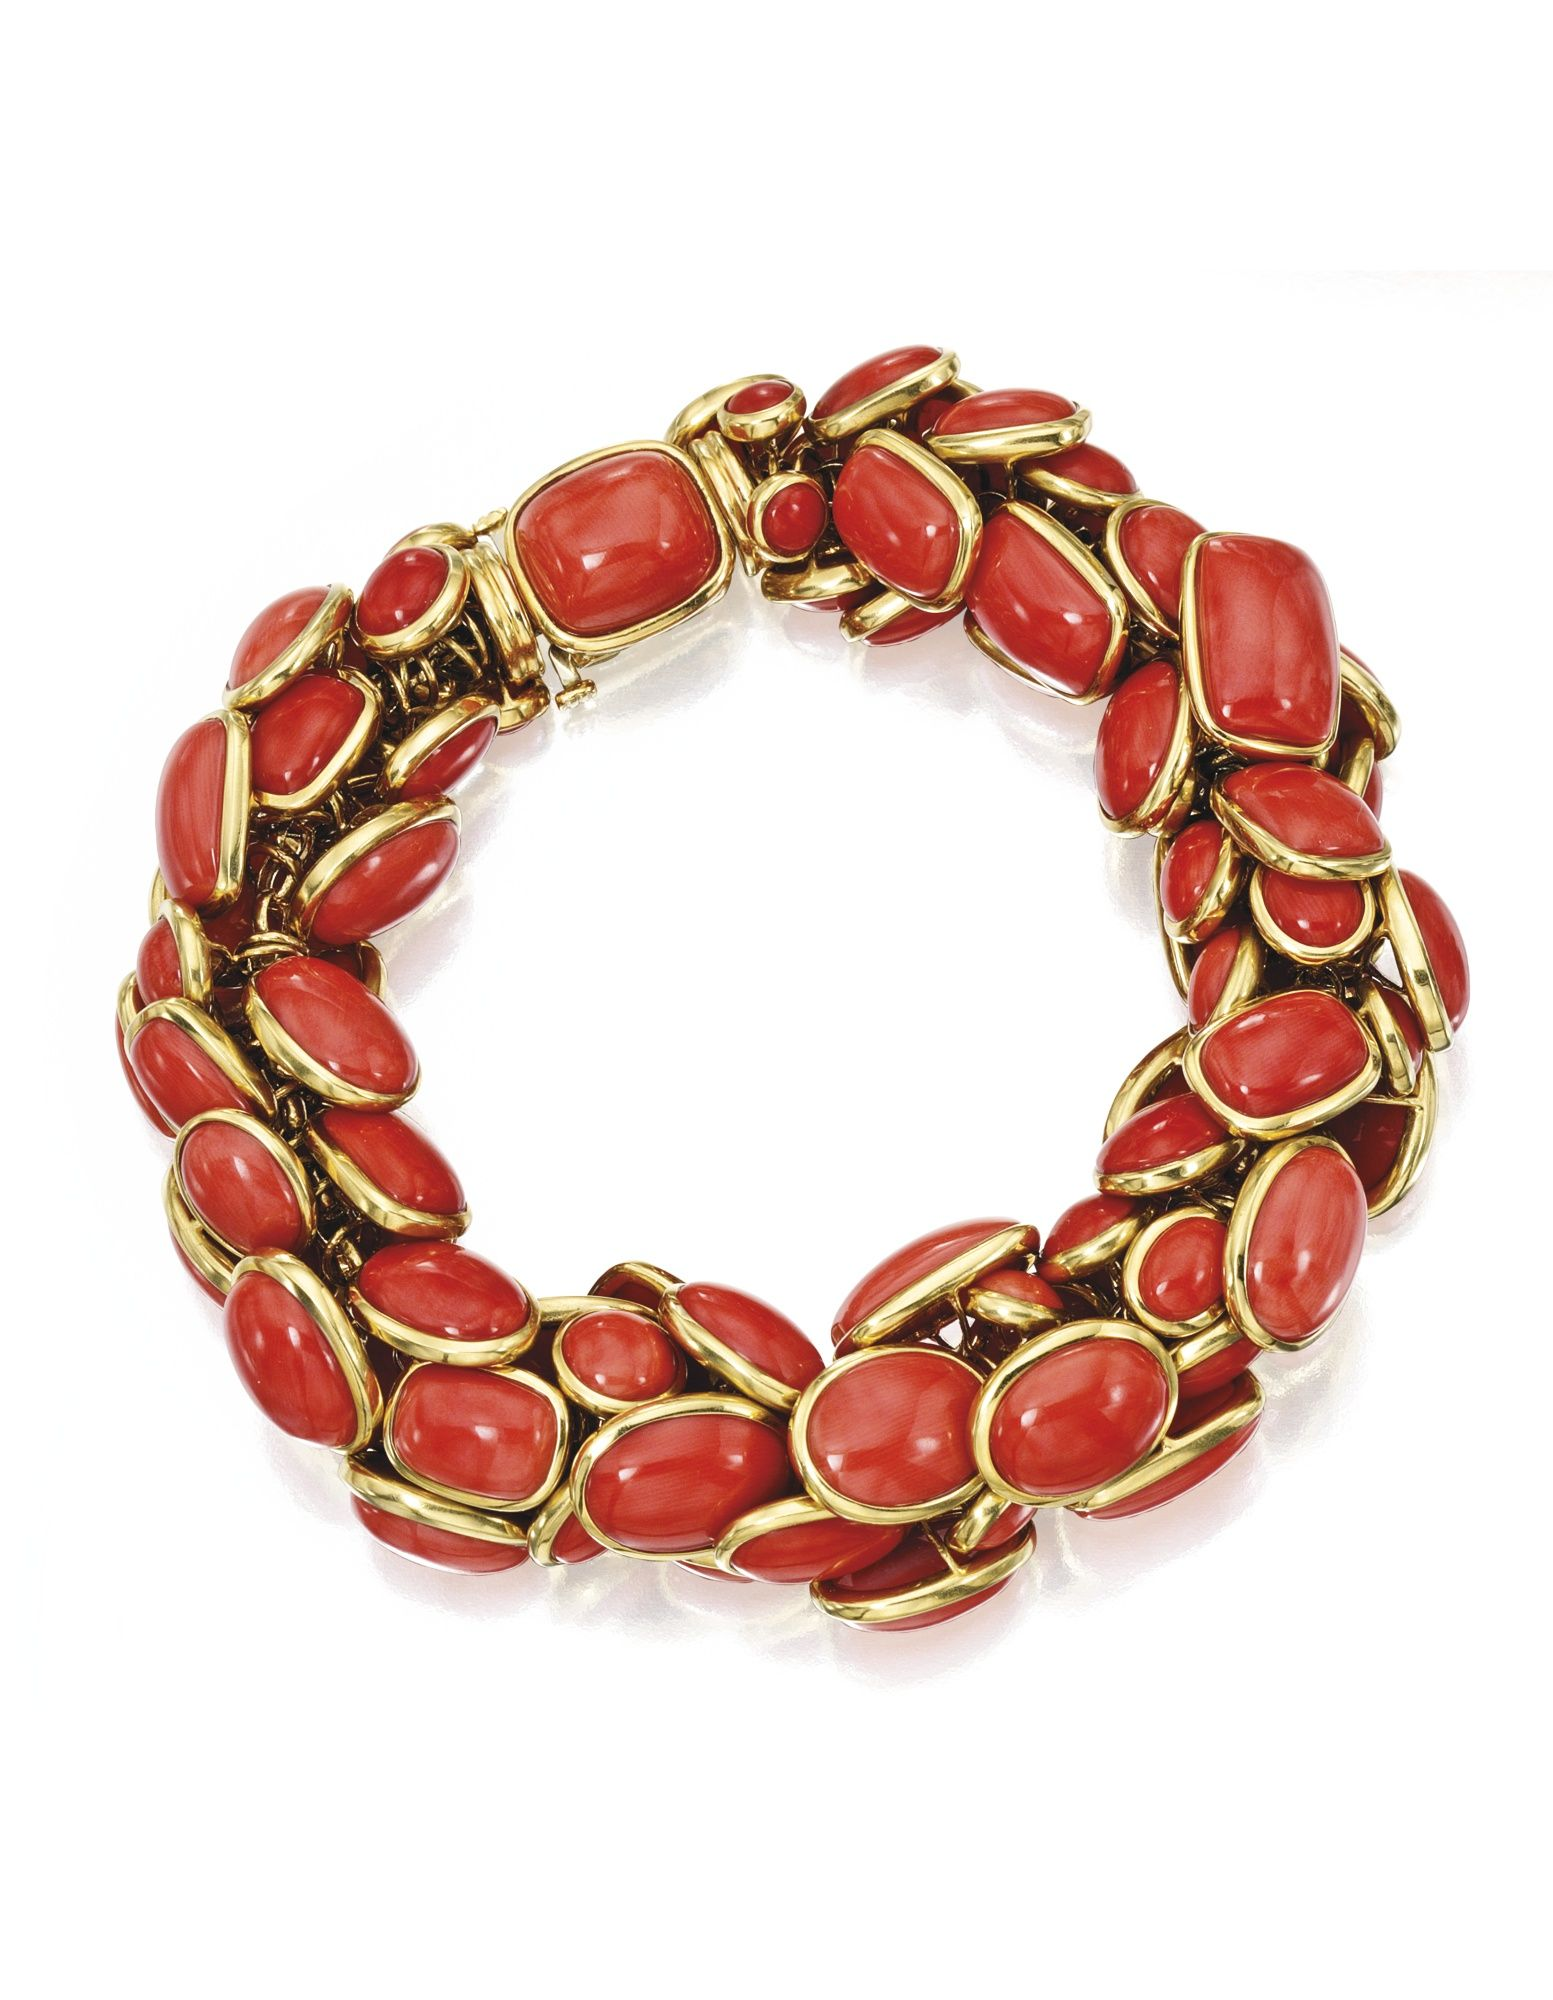 italy bracelet k ltd karat cuff diamond yellow gold product coral from s